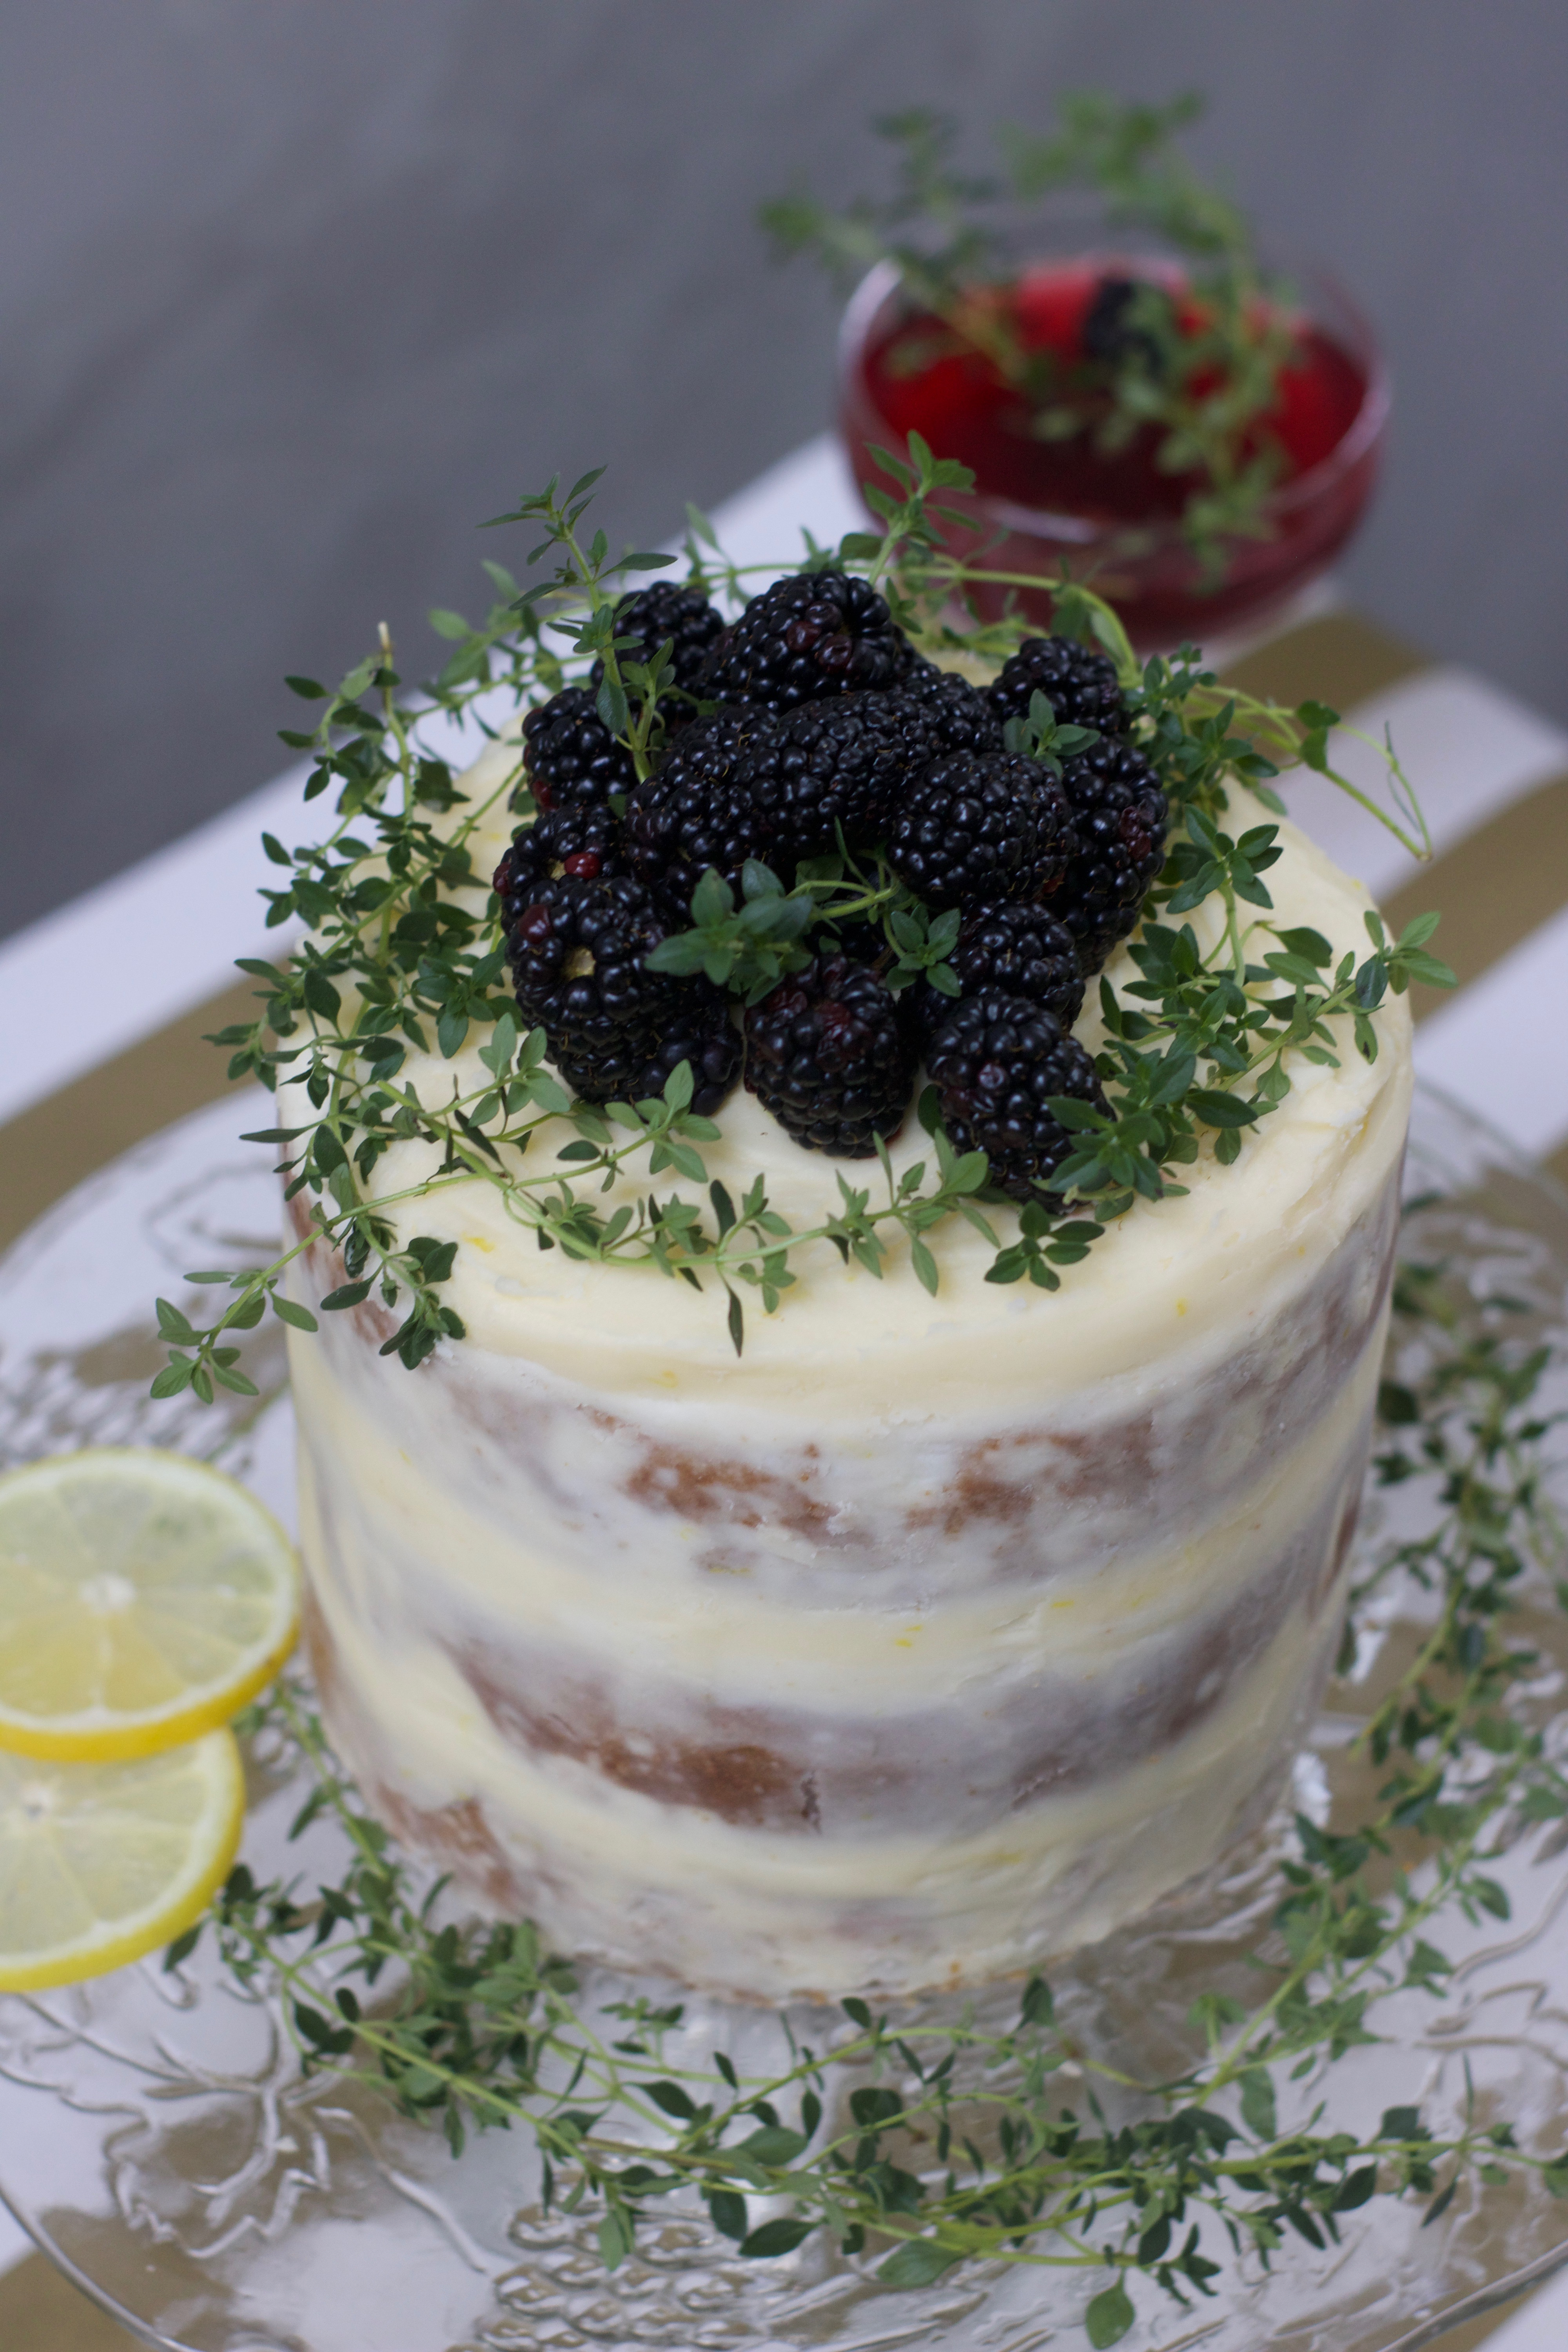 Most Popular Instagram Pictures: Blackberry Cake with Lemon Mascarpone